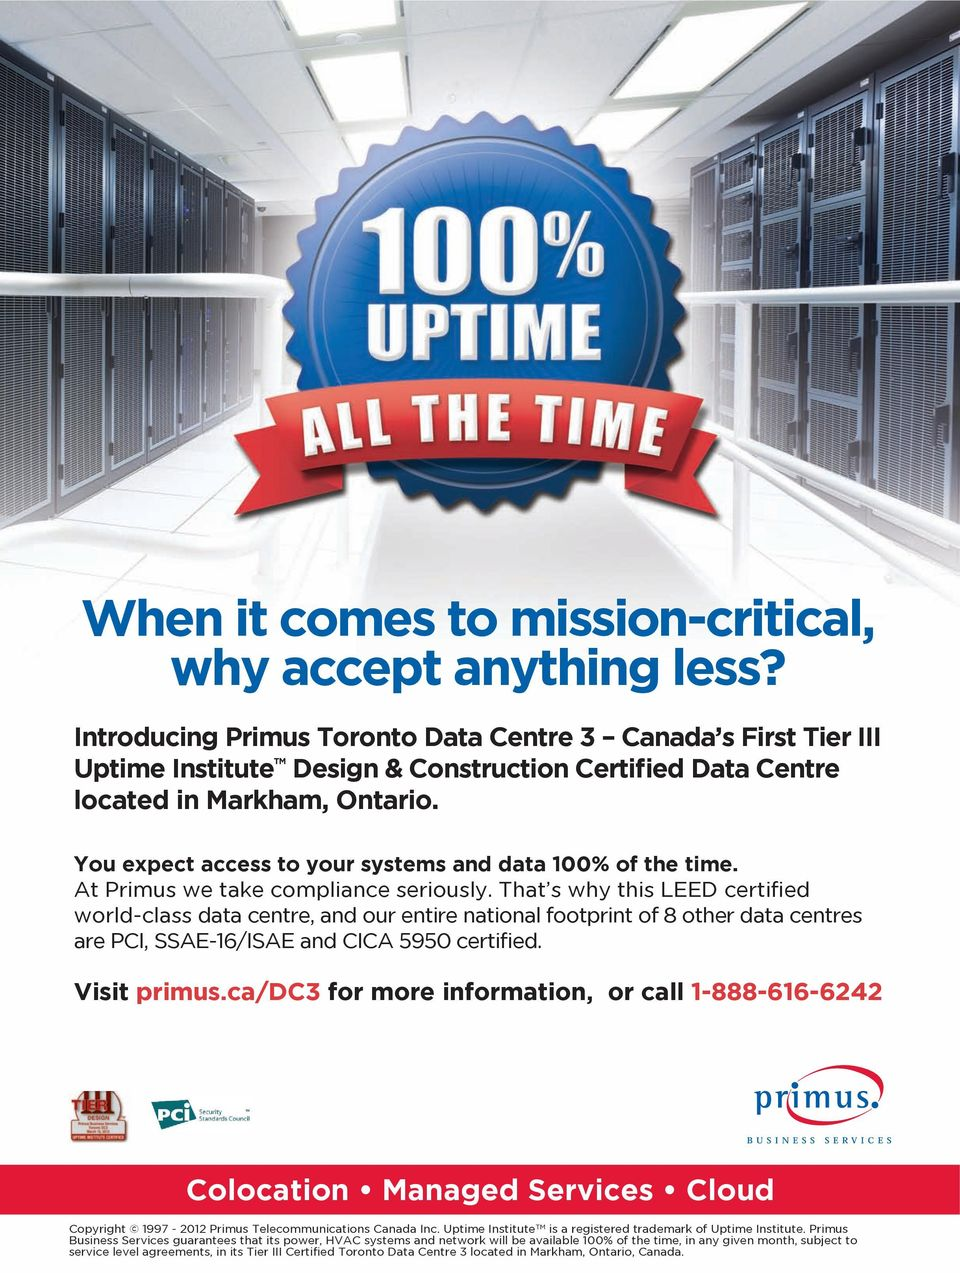 You expect access to your systems and data 100% of the time. At Primus we take compliance seriously.